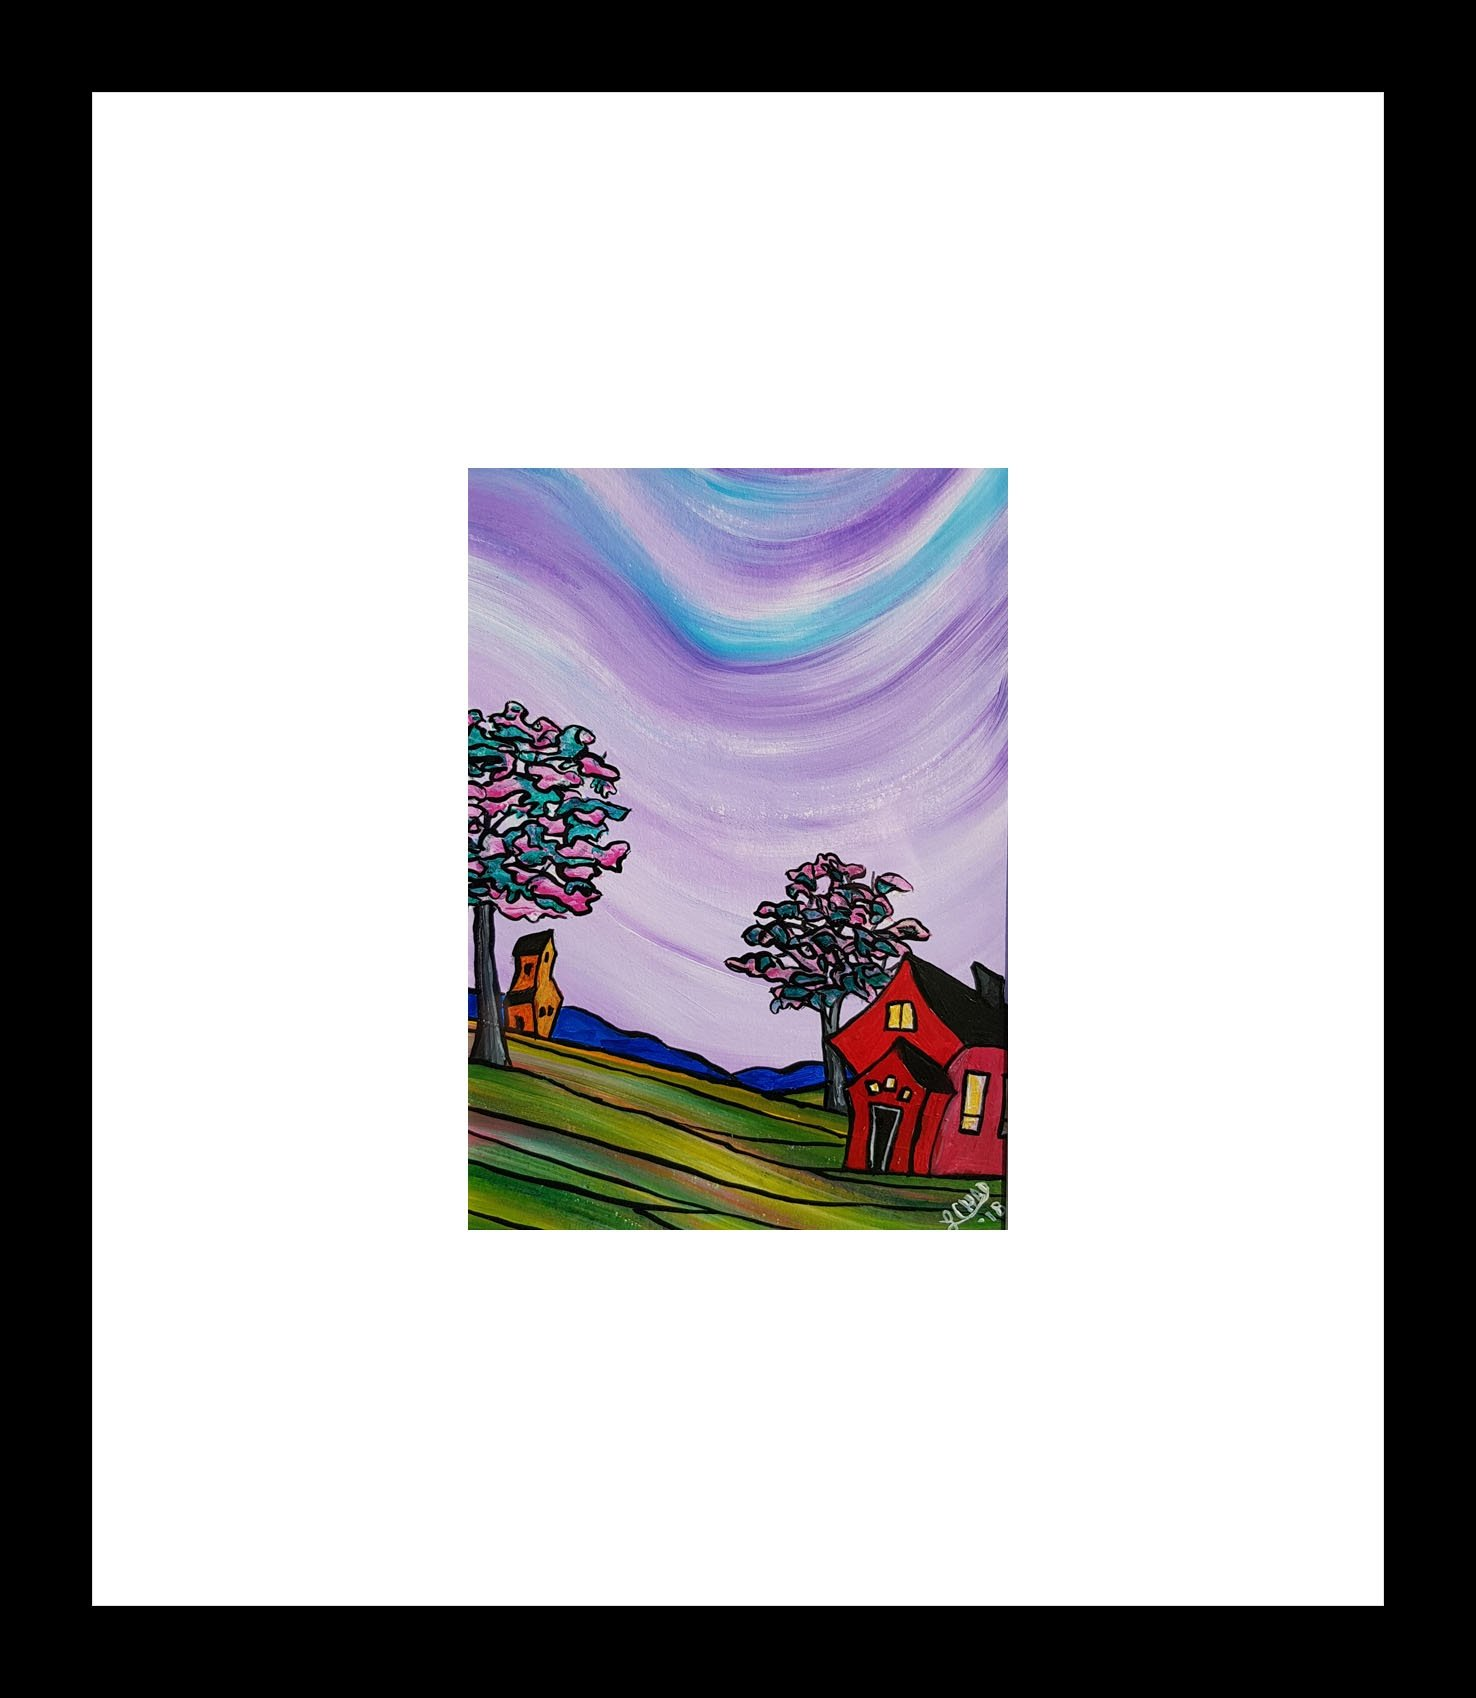 """Oh So Prairie"" [2018] Image: 7.5 x 9.5  Framed: 20"" x 20"" Acrylic on 246 lb. paper SOLD"